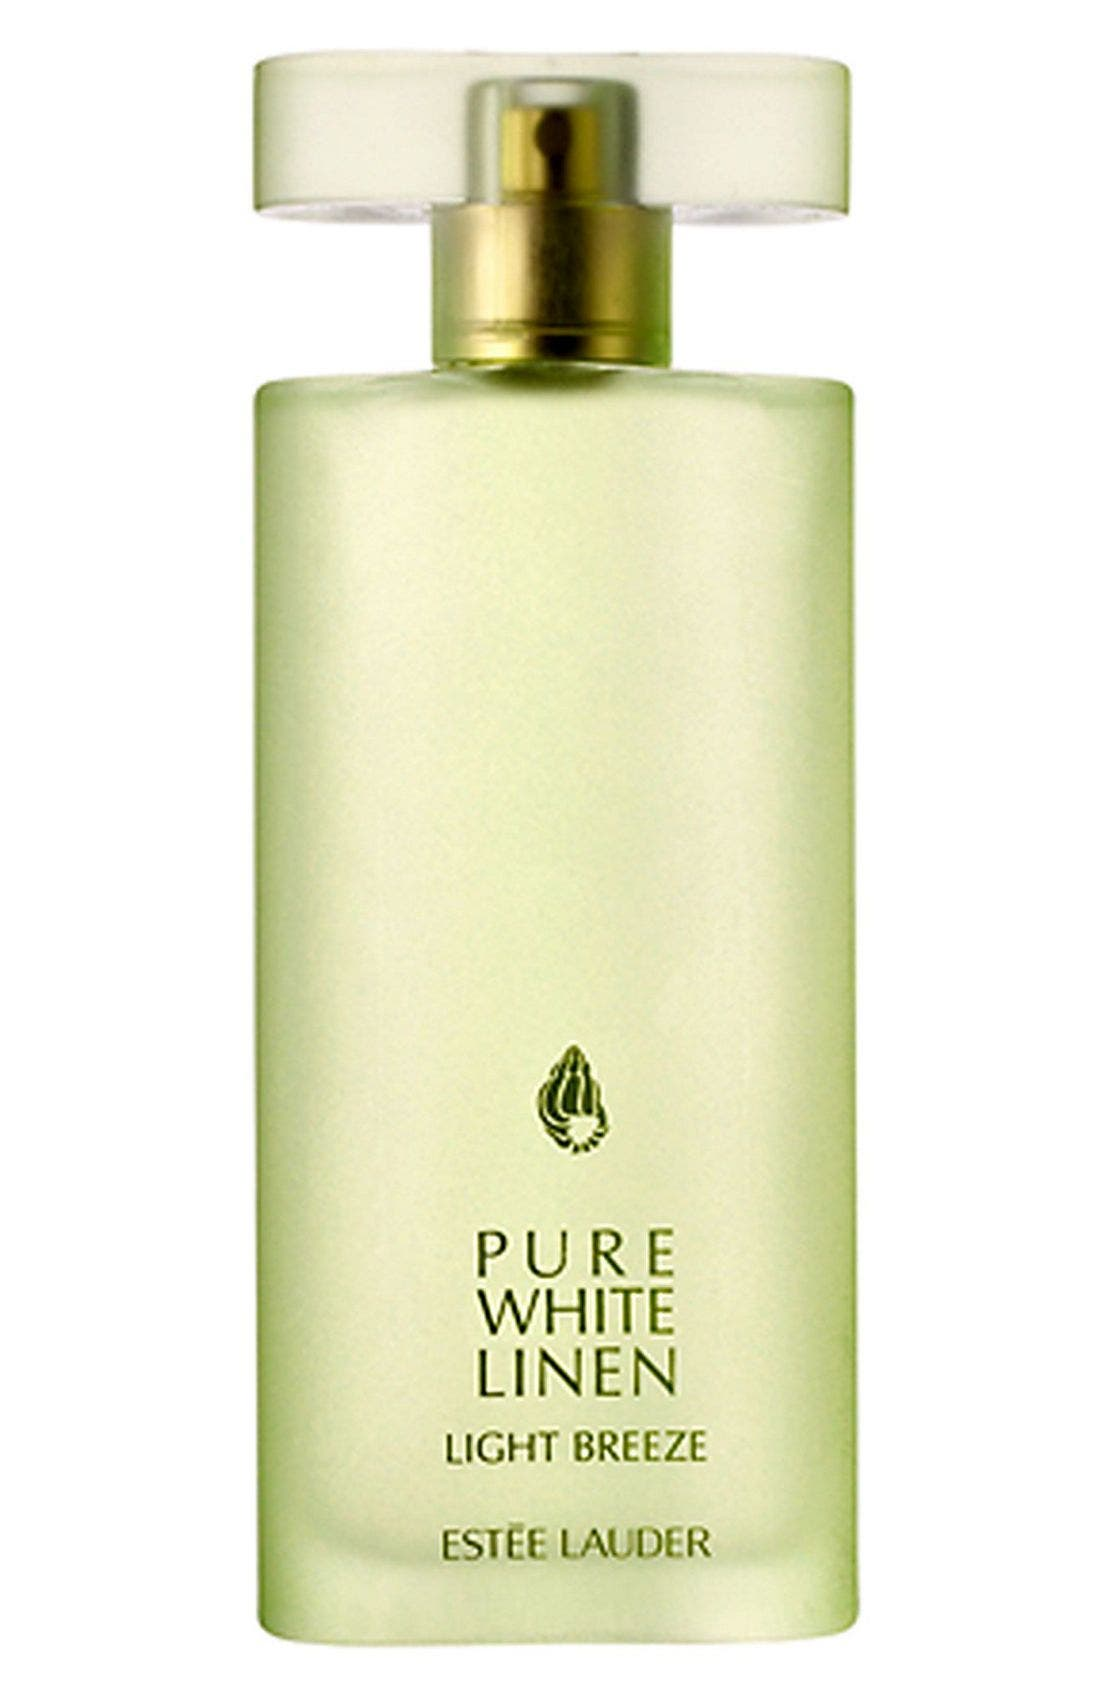 ESTÉE LAUDER, Pure White Linen - Light Breeze Eau de Parfum Spray, Main thumbnail 1, color, NO COLOR